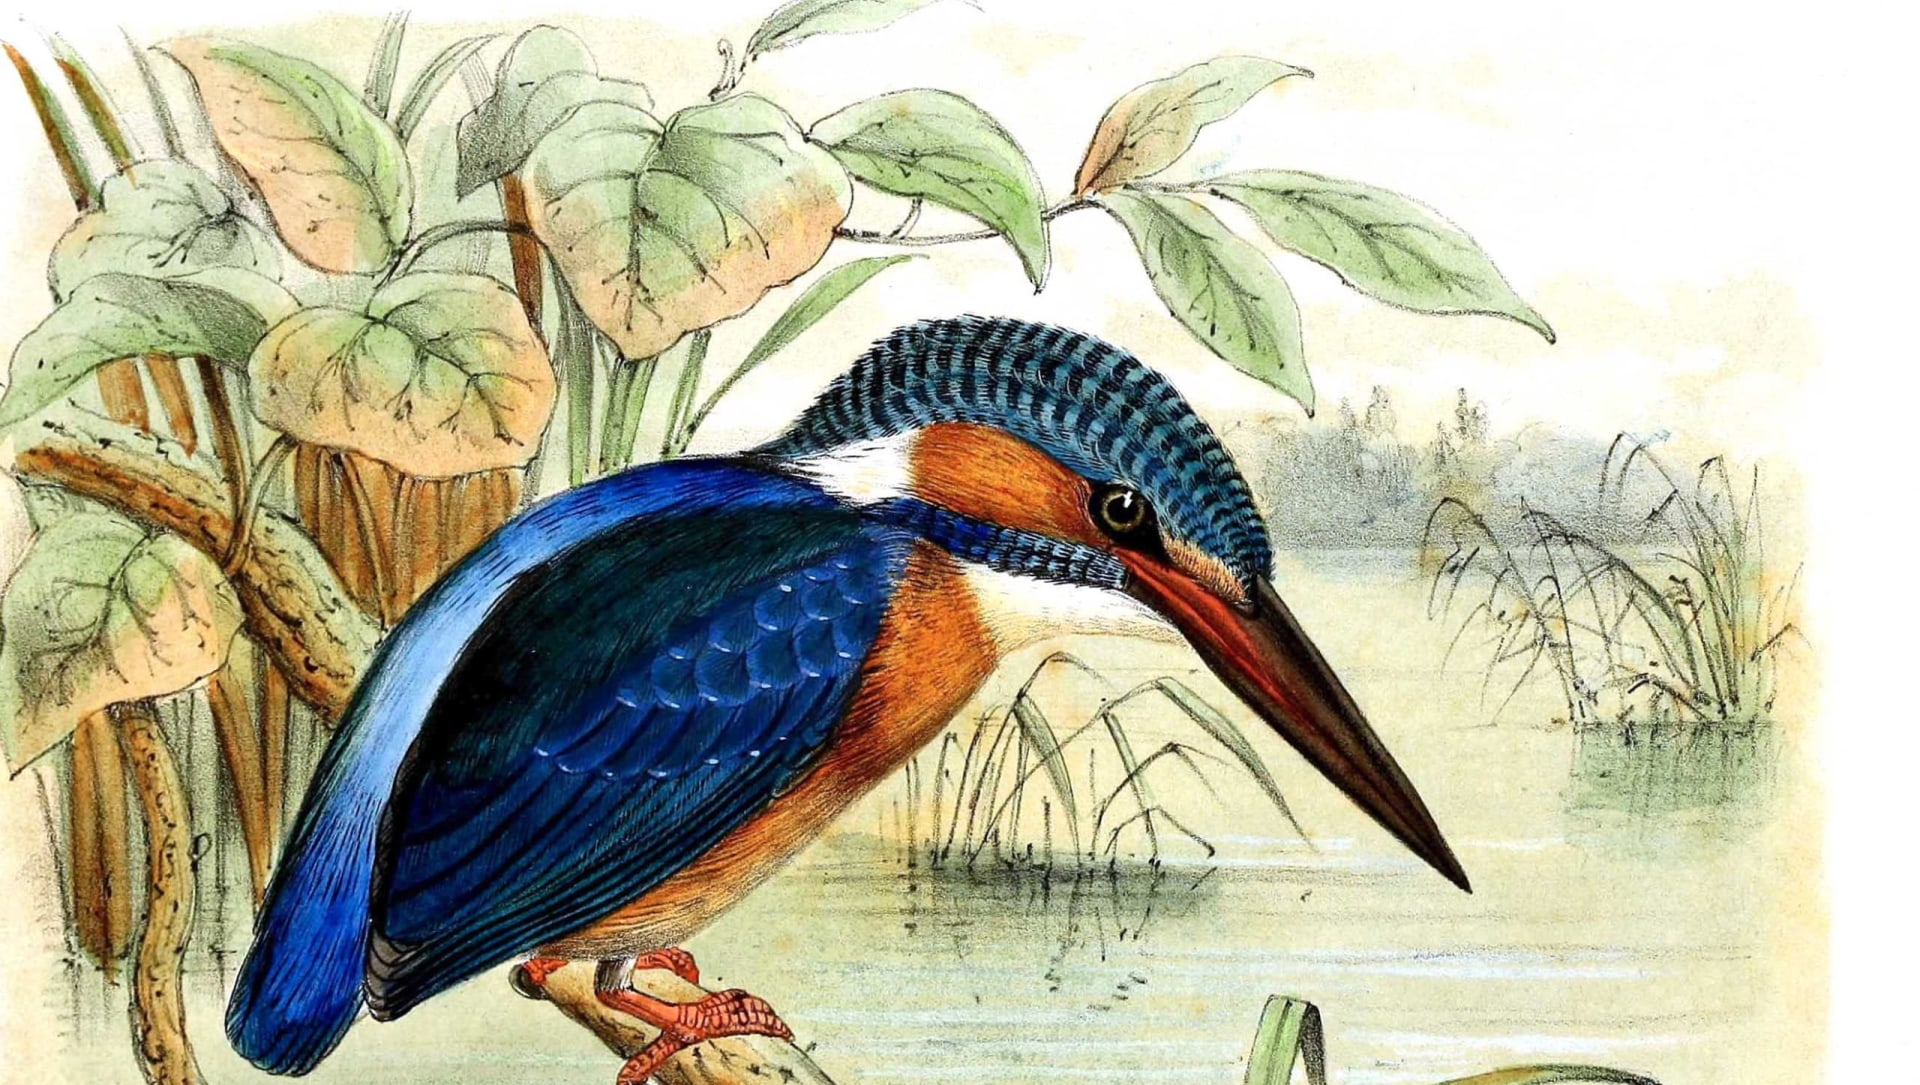 Feathered Folklore: Birds and Their Amazing Avatars